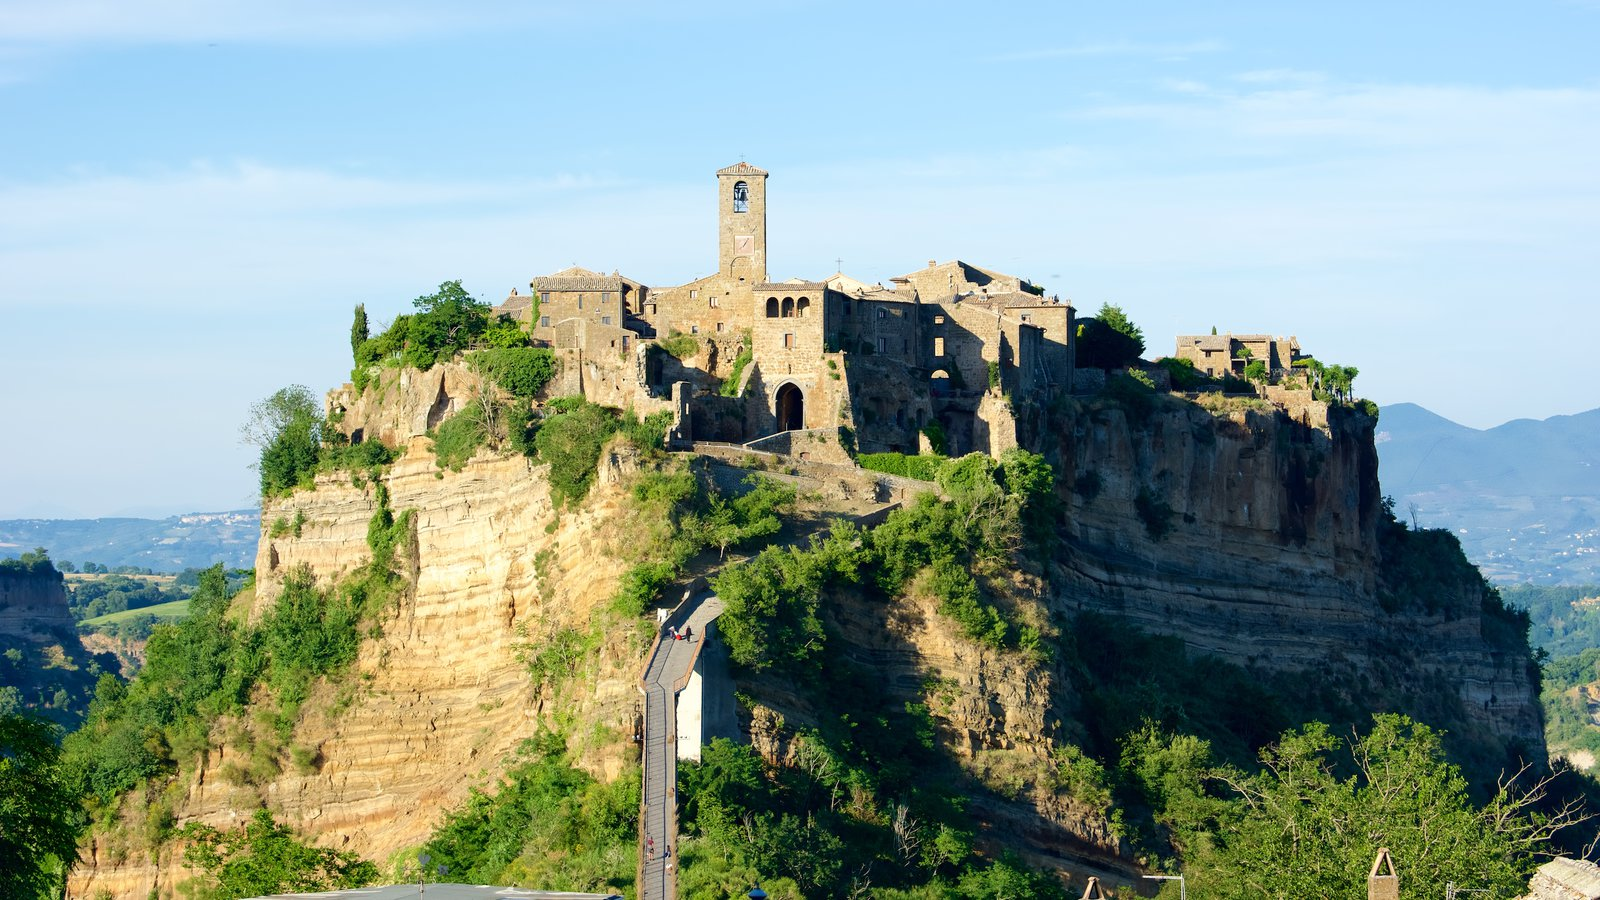 Historic Buildings Pictures: View Images of Bagnoregio